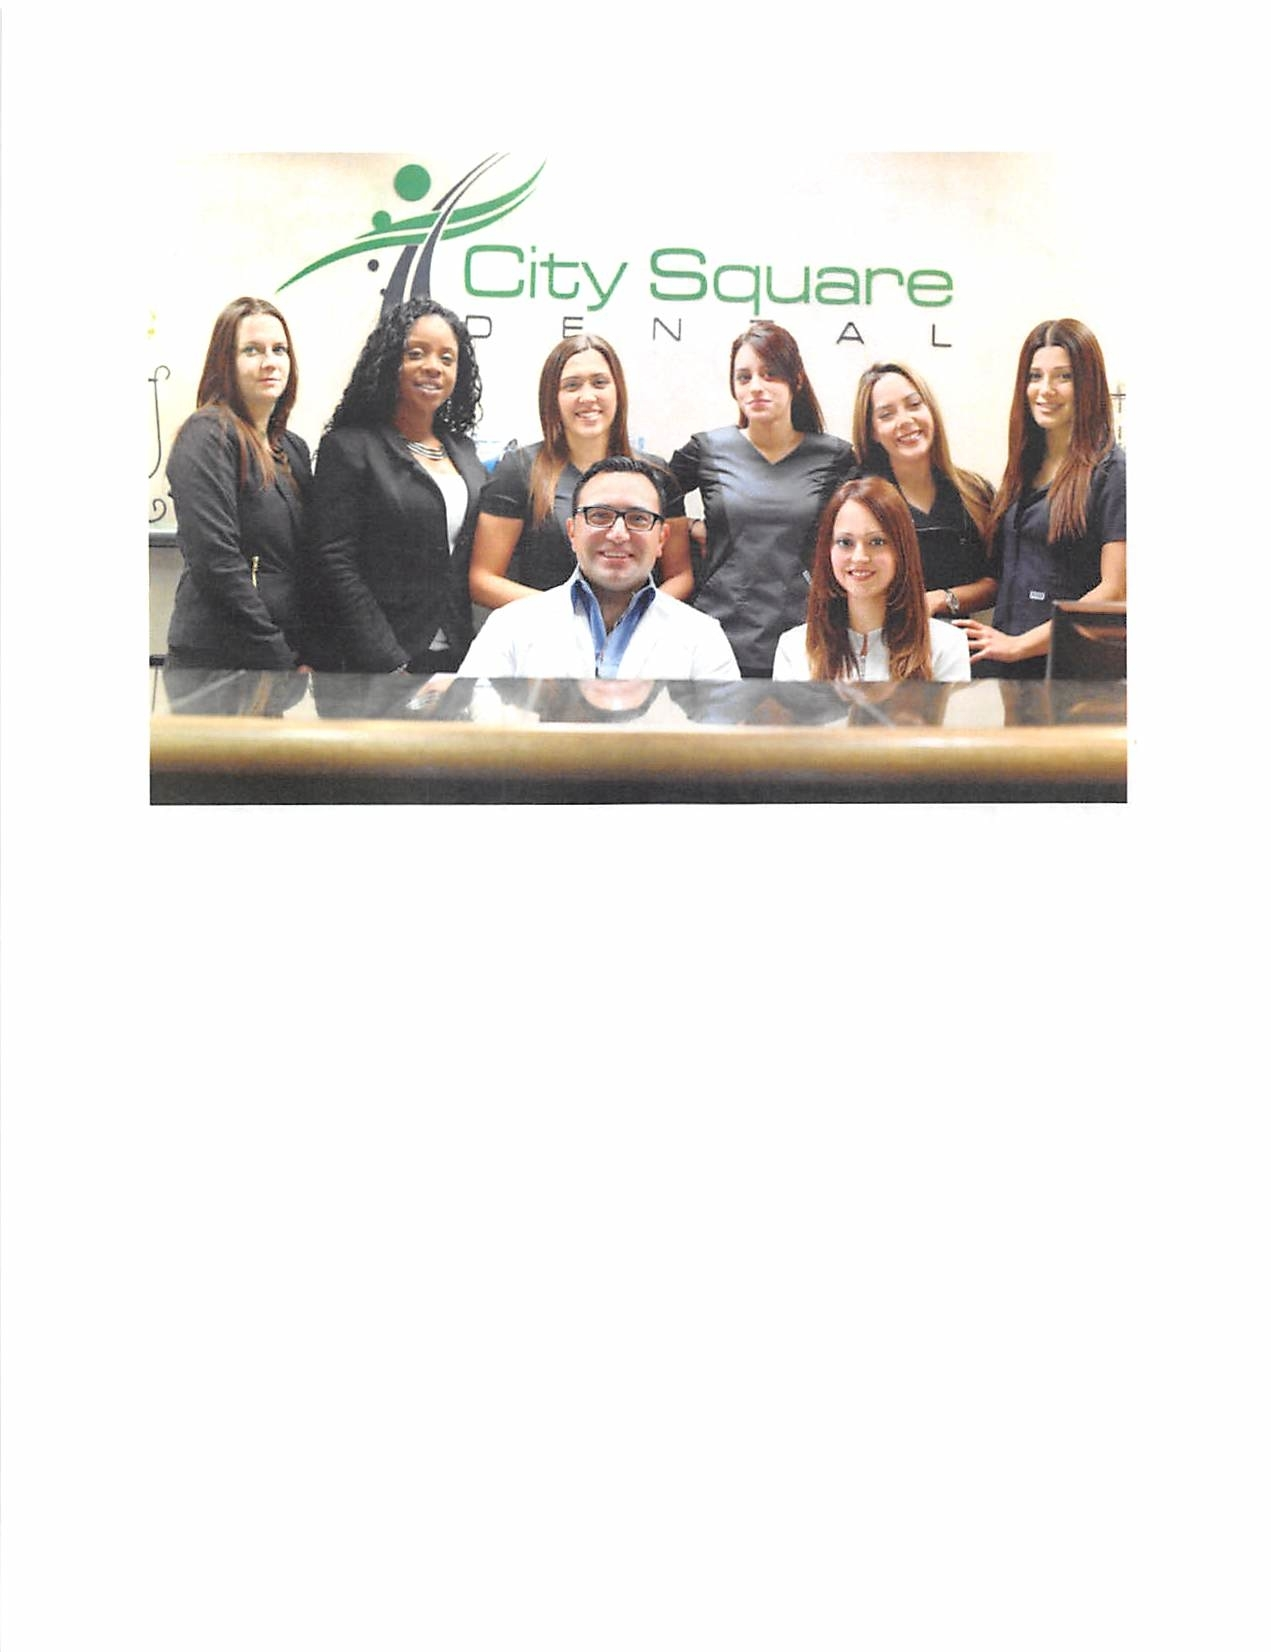 City Square Dental